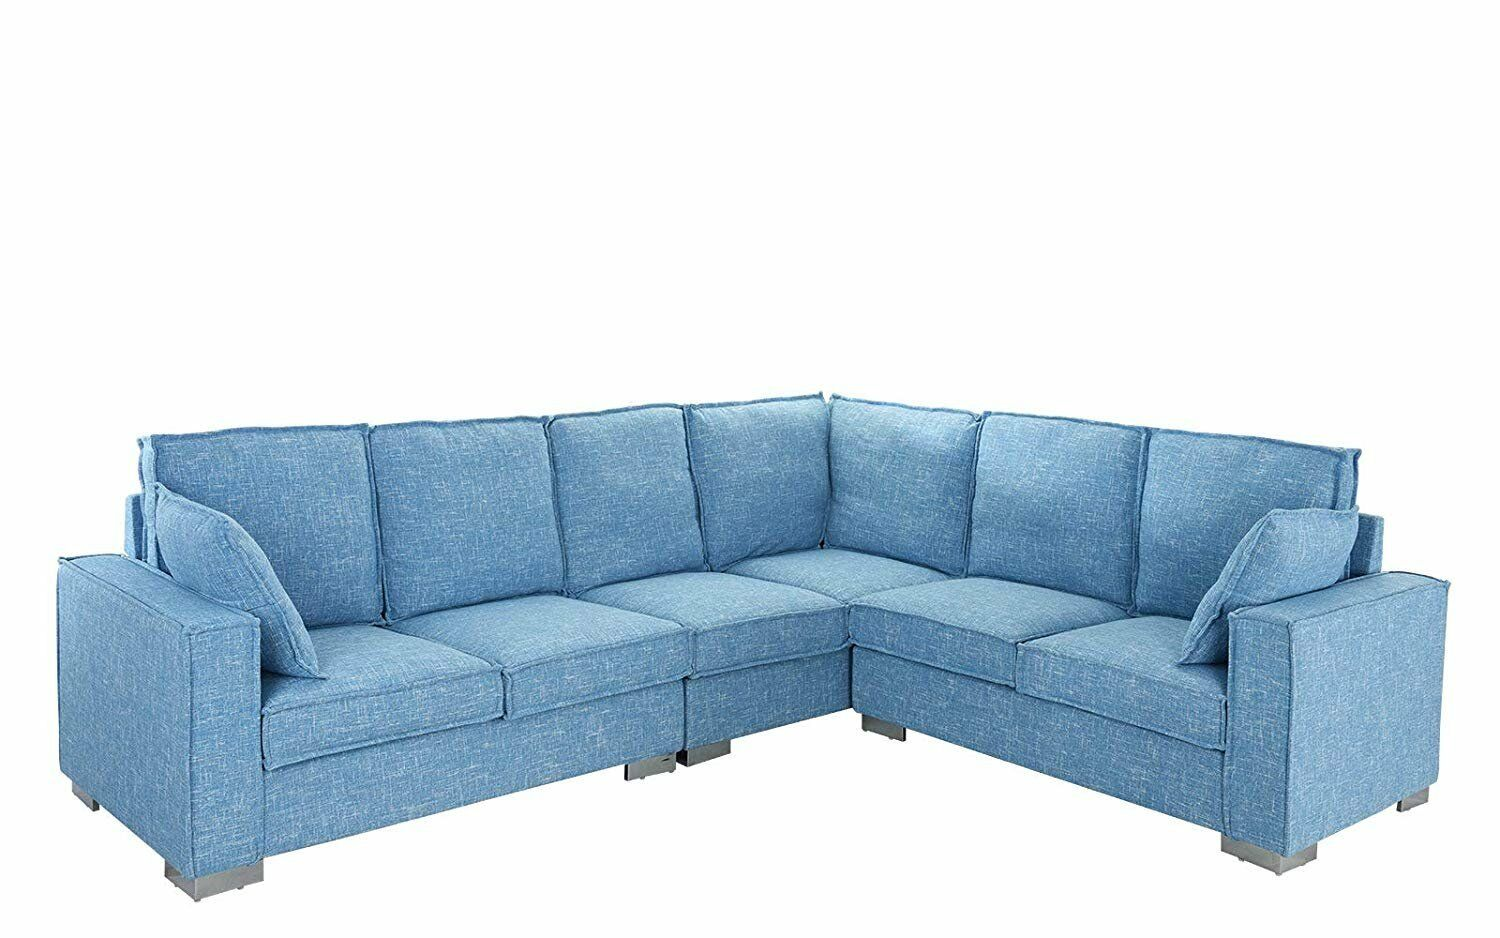 Large 101 2 Living Room Fabric Sectional Sofa Classic L Shape Couch Light Blue